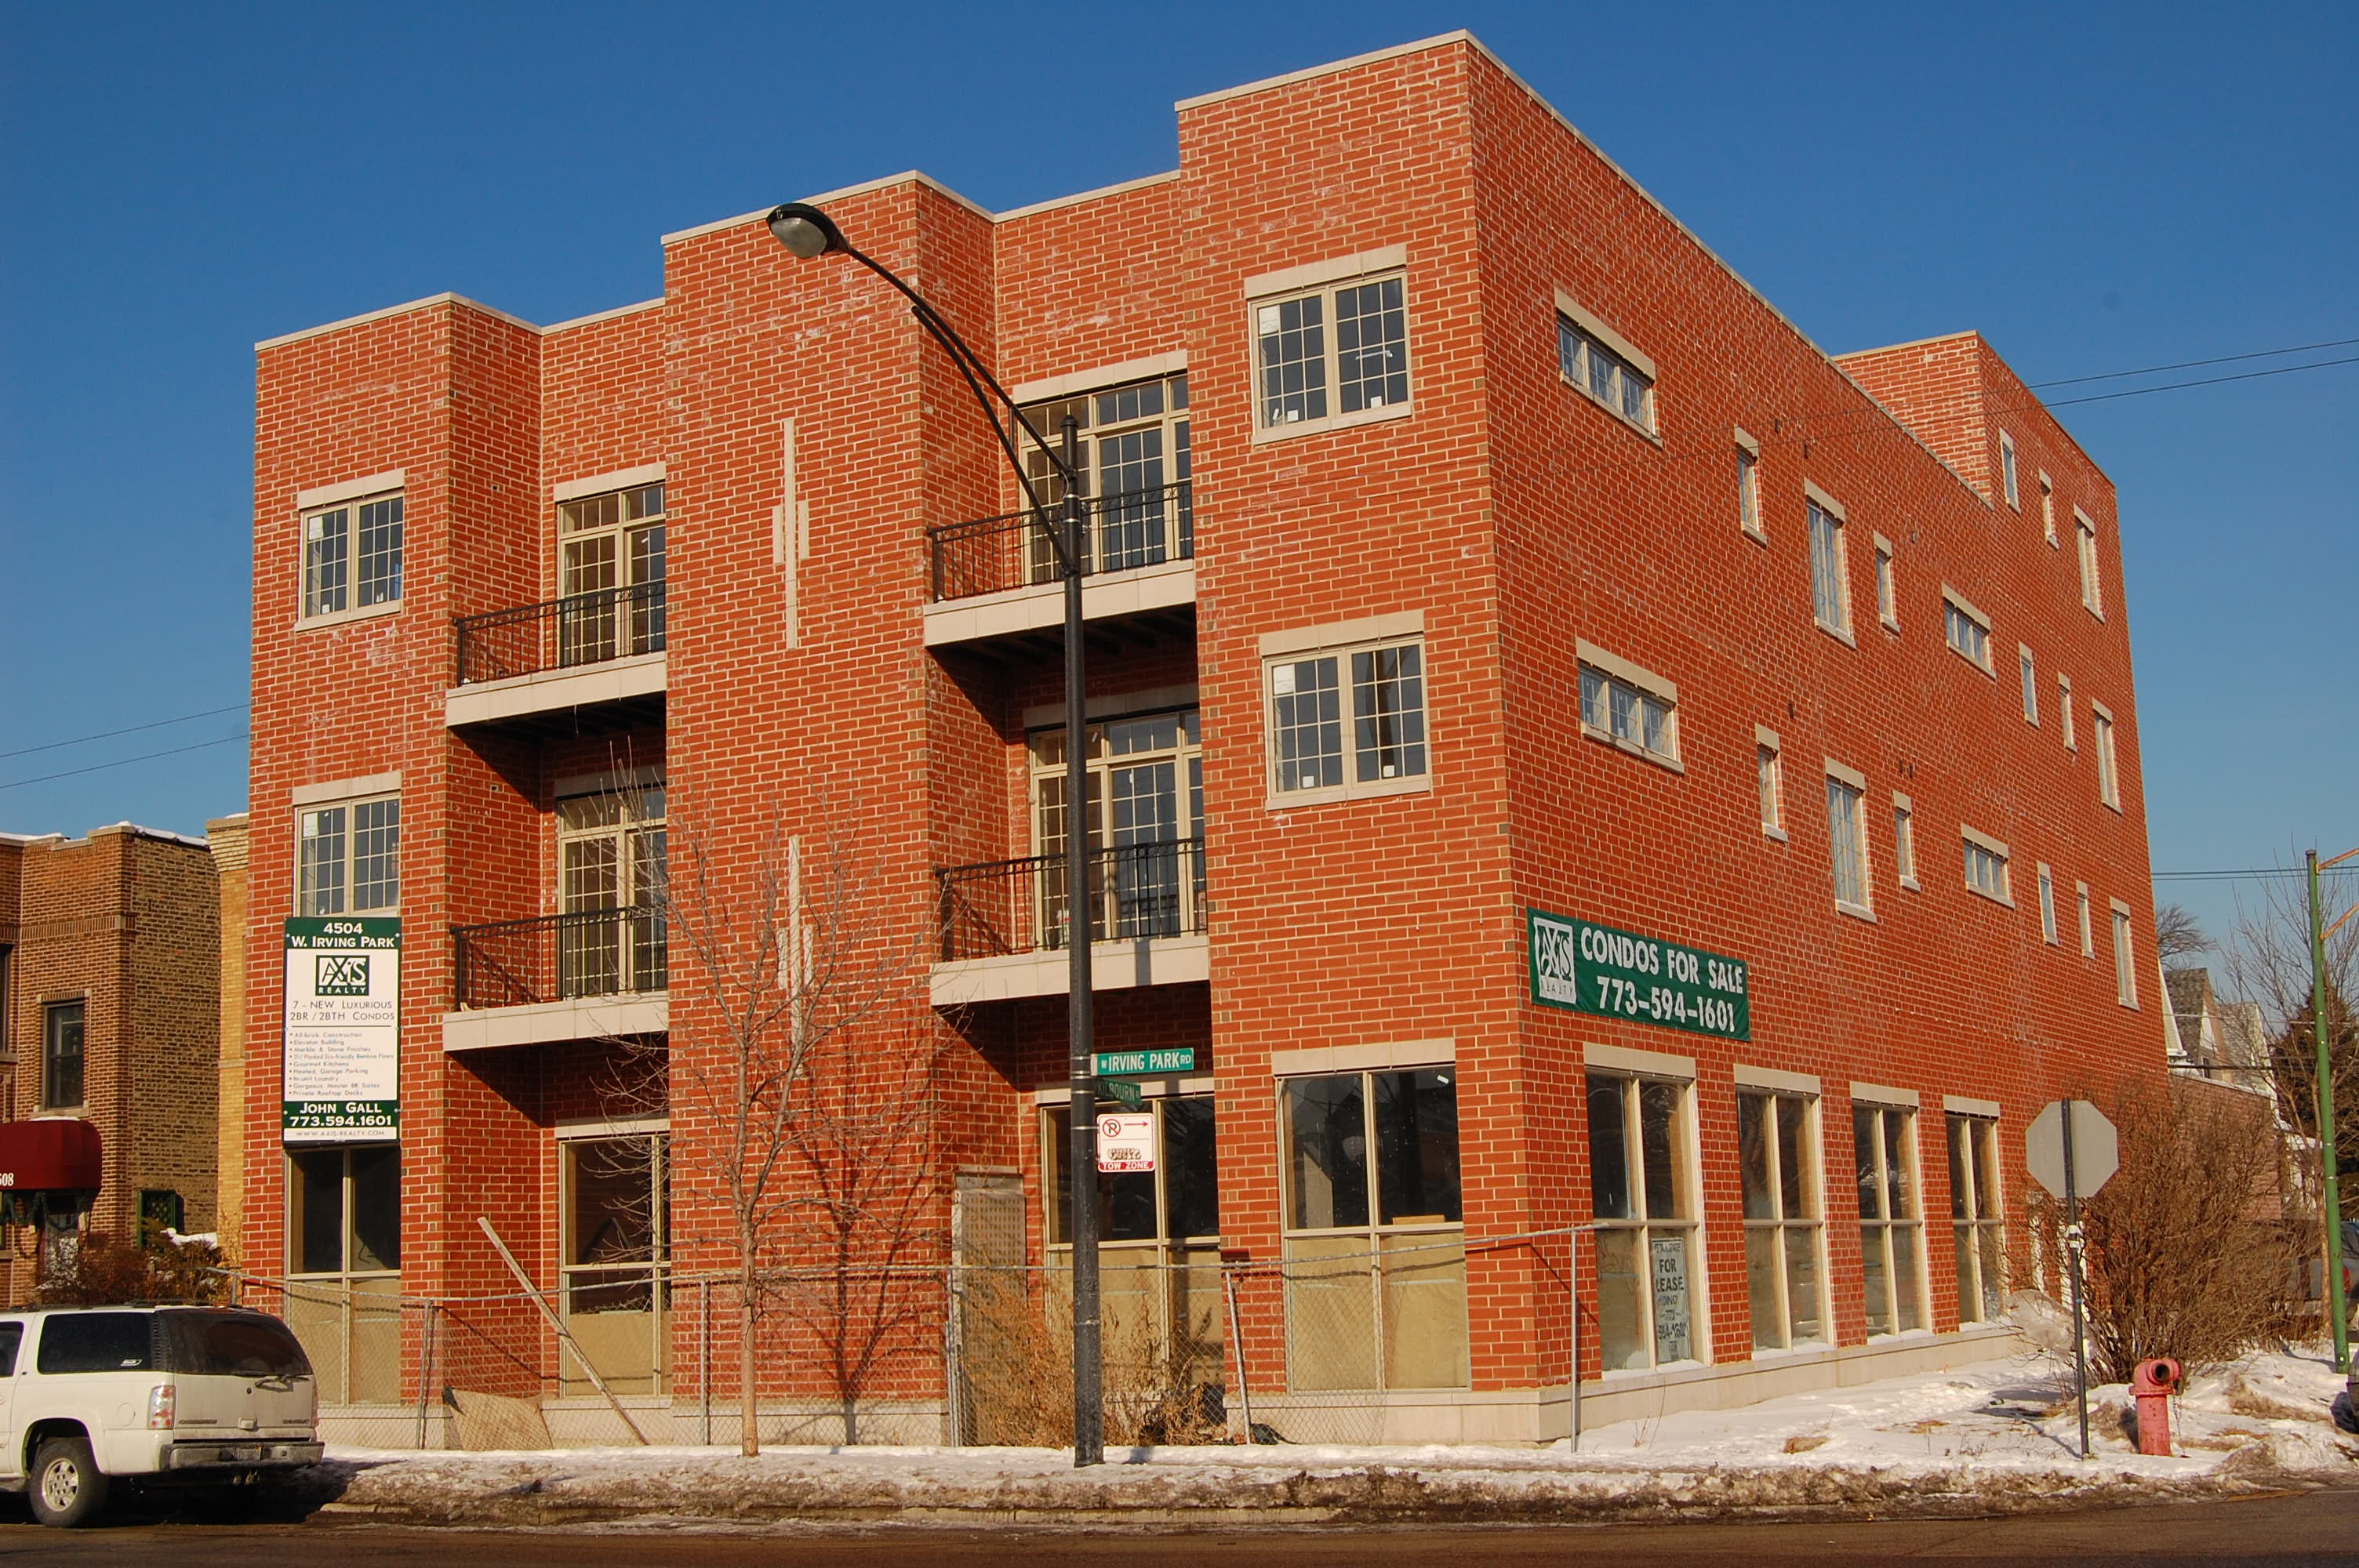 We love lists: New homes in Old Irving Park